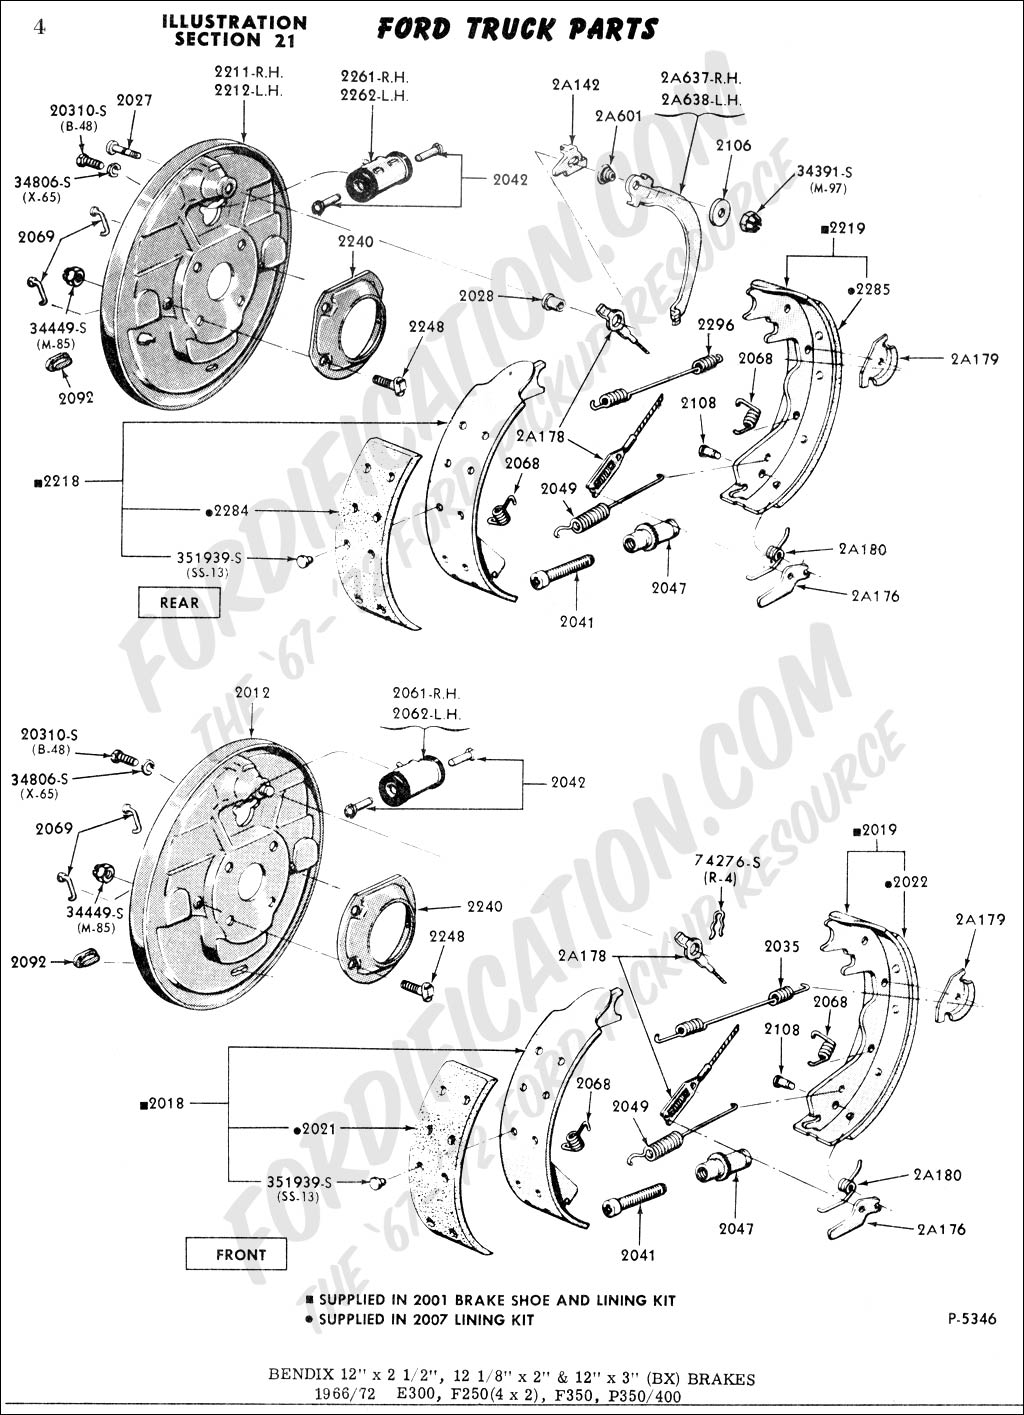 Ford F 250 Parts Diagram Wiring Diagram Schematics